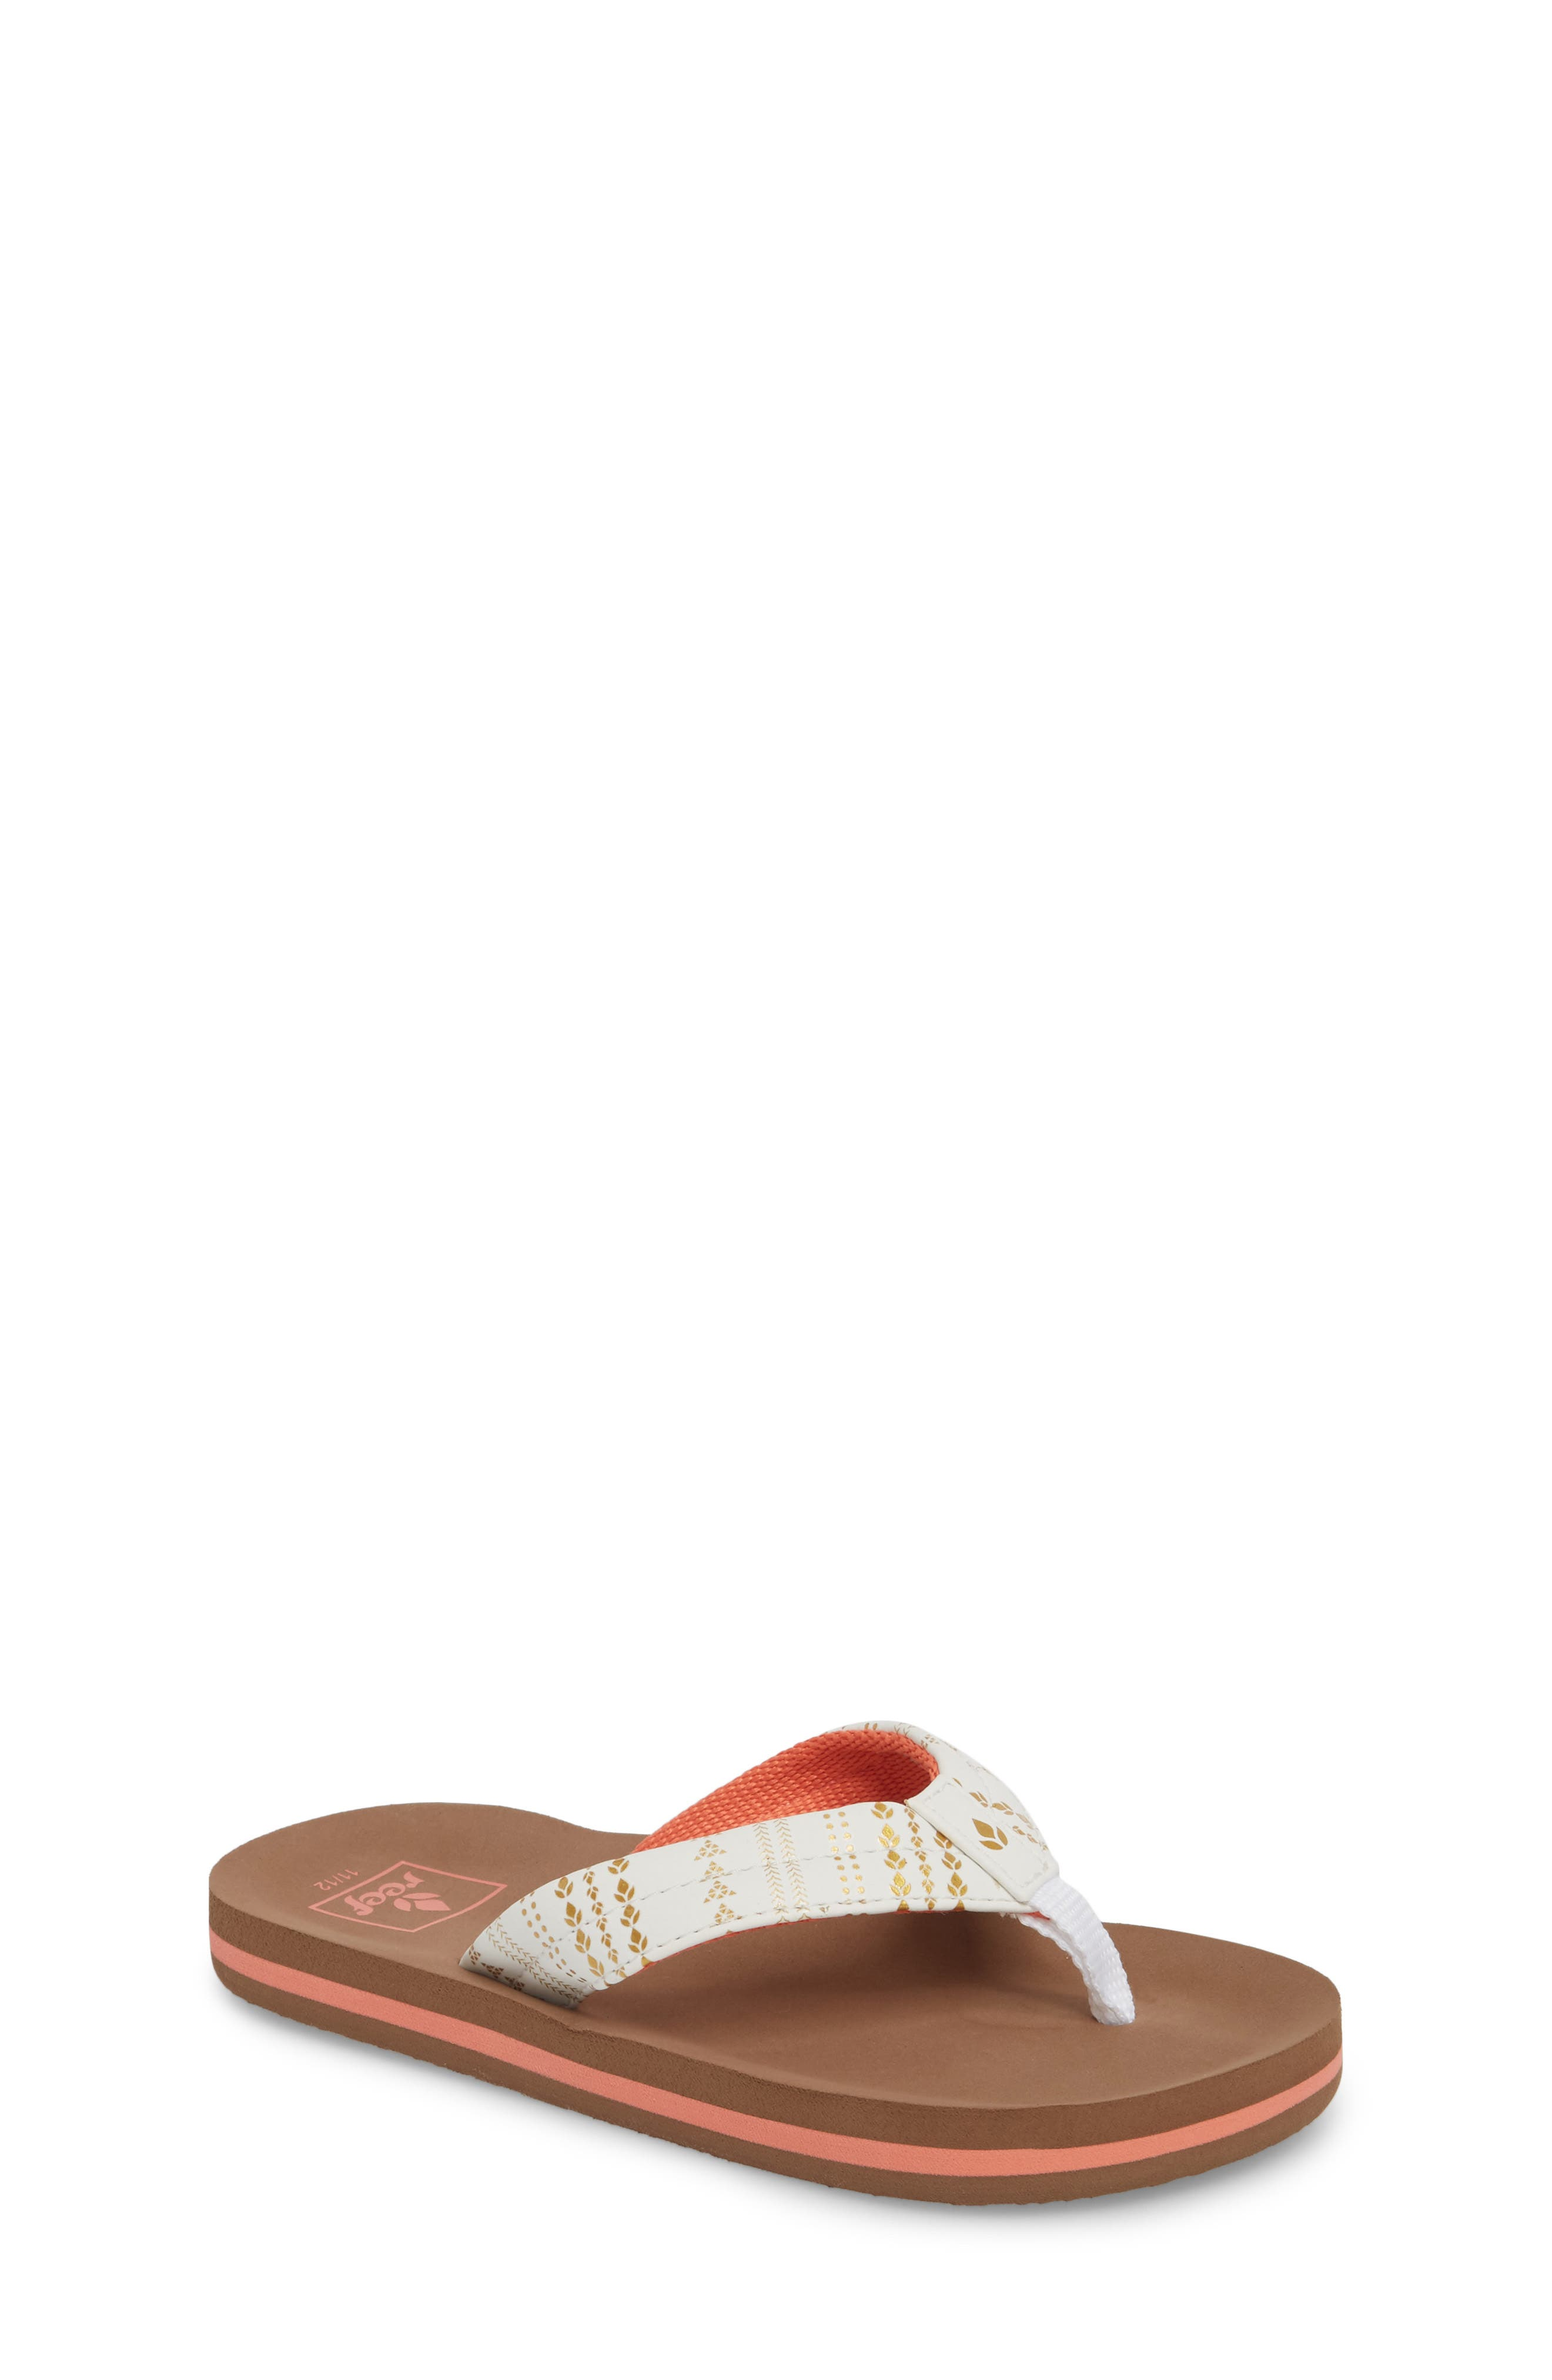 Little Ahi Tattoo Flip Flop,                         Main,                         color, WHITE